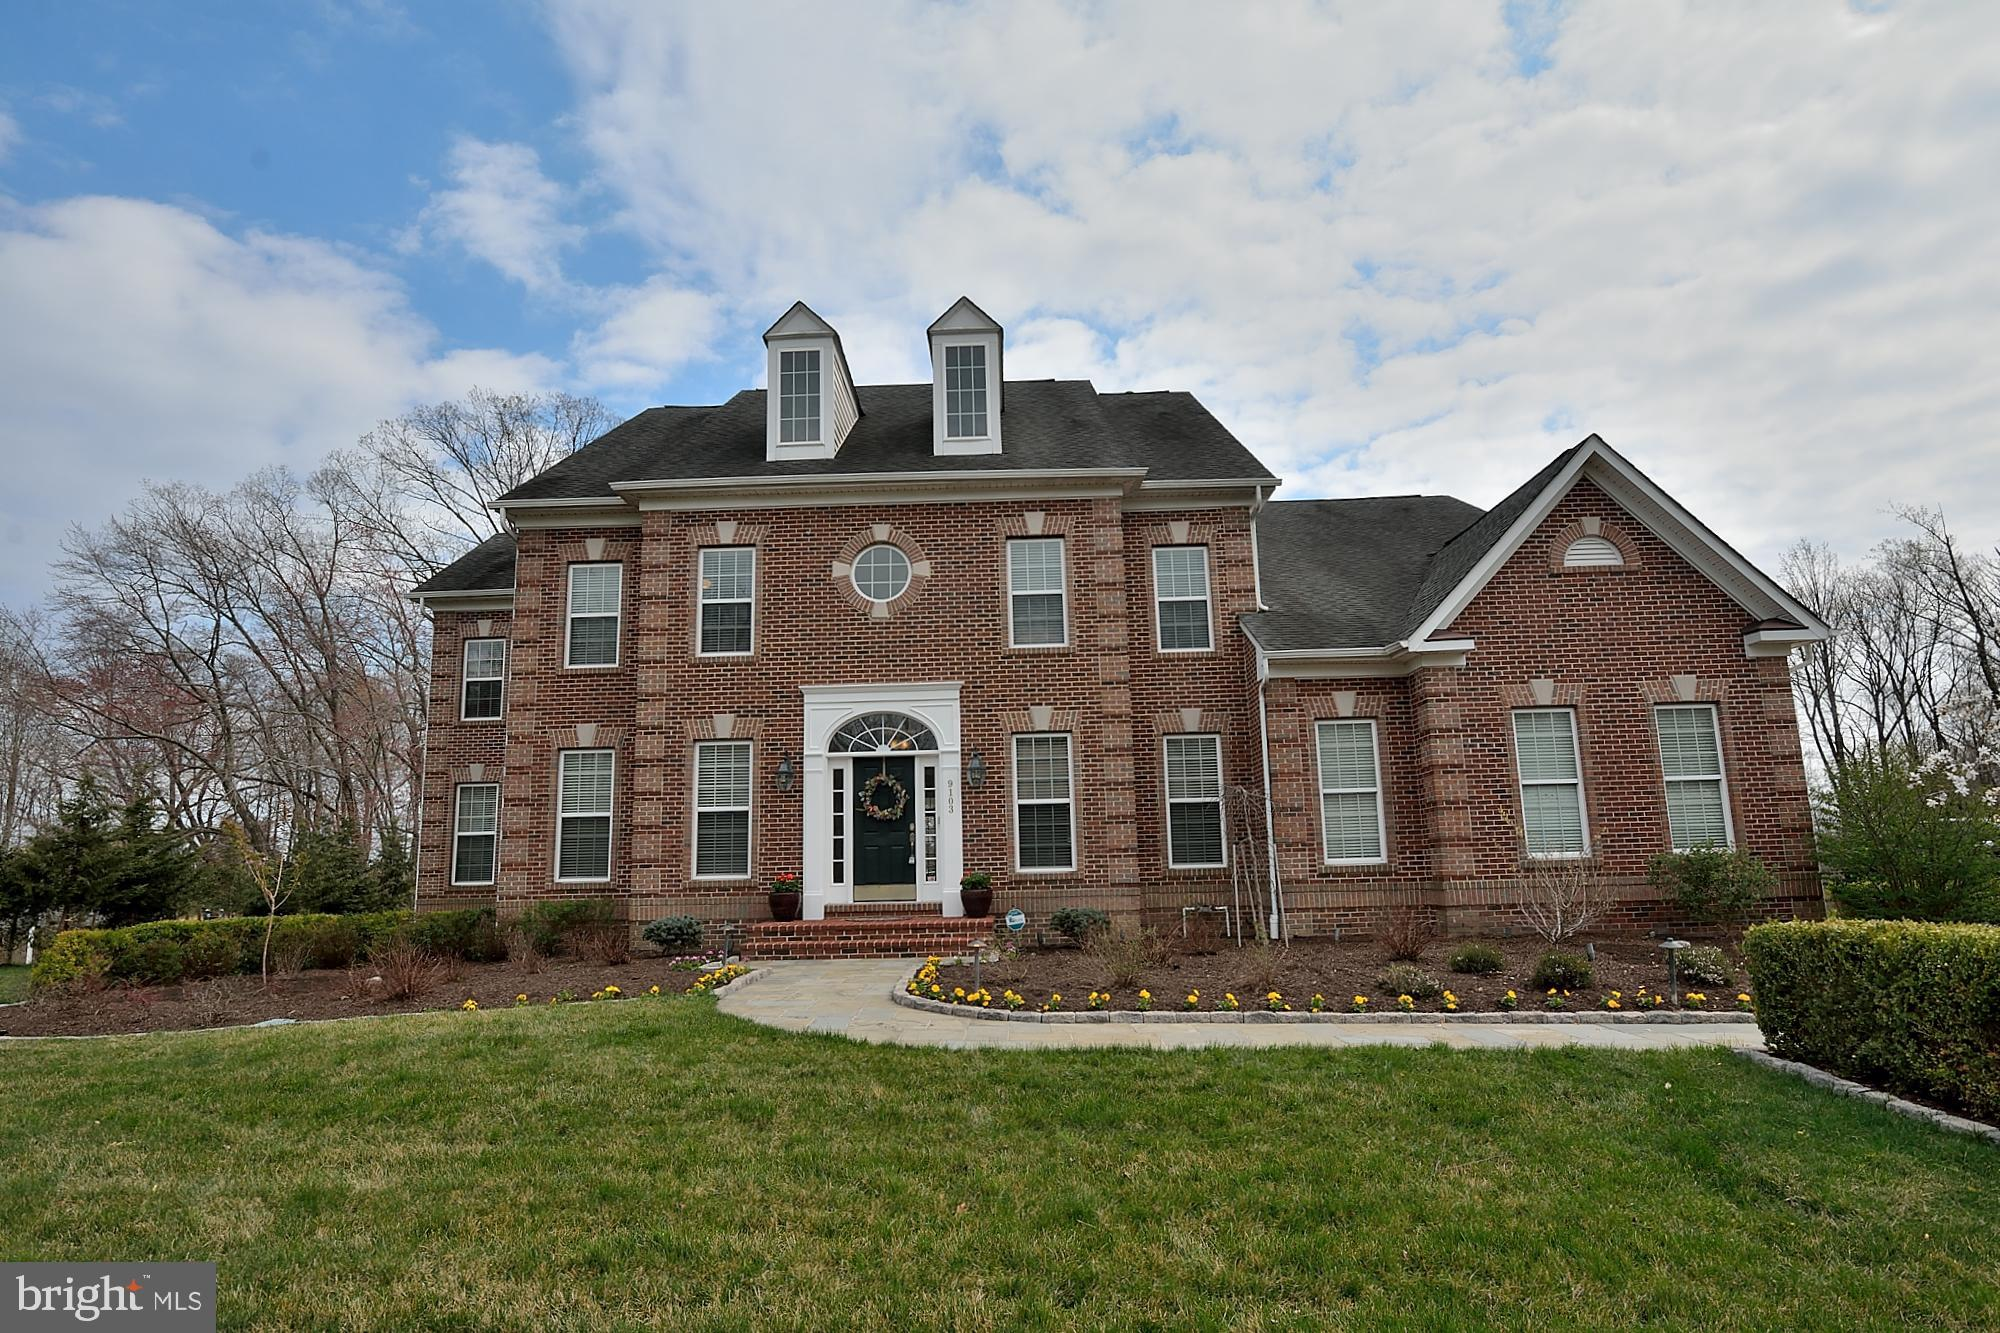 """A NOTCH ABOVE THE COMPETITION"" IS THE BEST WAY TO DESCRIBE THIS WONDERFUL UPSCALE HOME SITED ON OVER AN ACRE LOT AND OFFERING OVER 8000 SQ. FT. OF FINISHED LIVING SPACE.  OPEN FLOOR PLAN HIGH CEILINGS, 2-STORY FAMILY ROOM, PILLARS, BRAZILIAN HARDWOOD FLOORS, UPGRADED MLDGS, MASTER WING... BASEMENT ADDS ANOTHER EXPERIENCE OFFERING EXERCISE SPACE, REC. ROOM, FULL BATH, MULTI PURPOSE ROOM AND THE BEST MEDIA ROOM.  PUT THIS ON YOUR SCHEDULE."